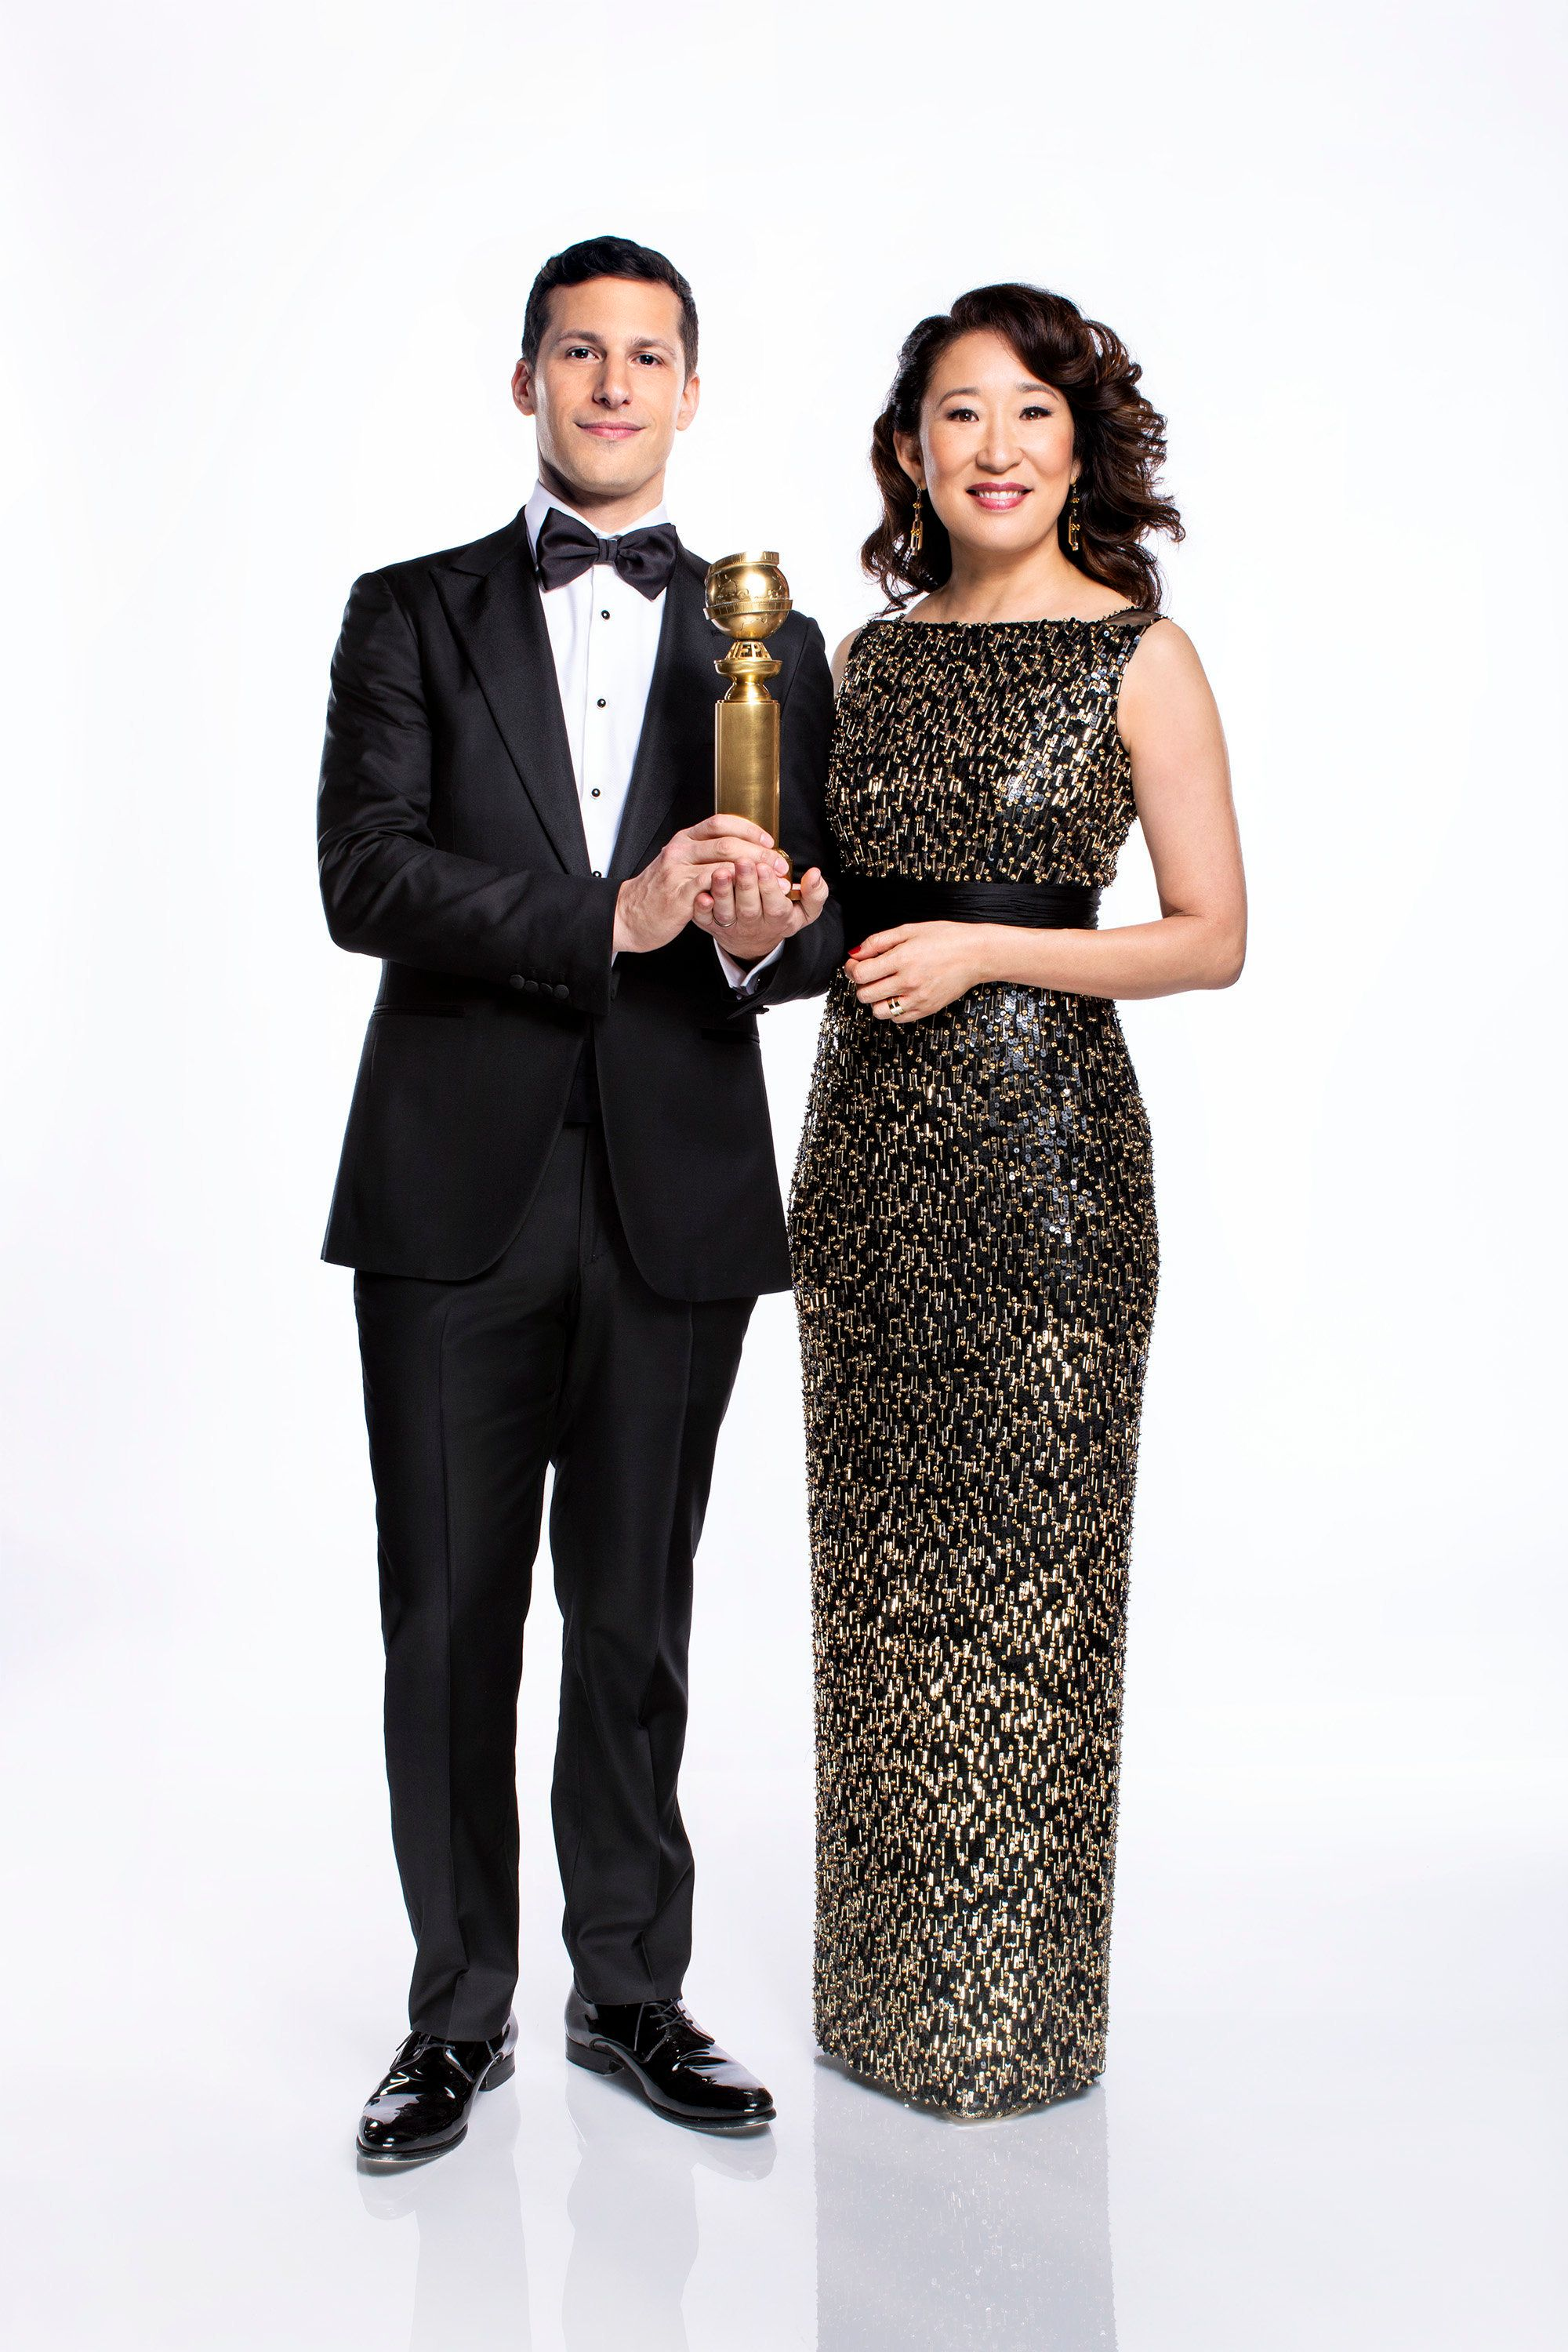 Golden Globes co-hosts Andy Samberg and Sandra Oh don't plan to focus on politics during the show.